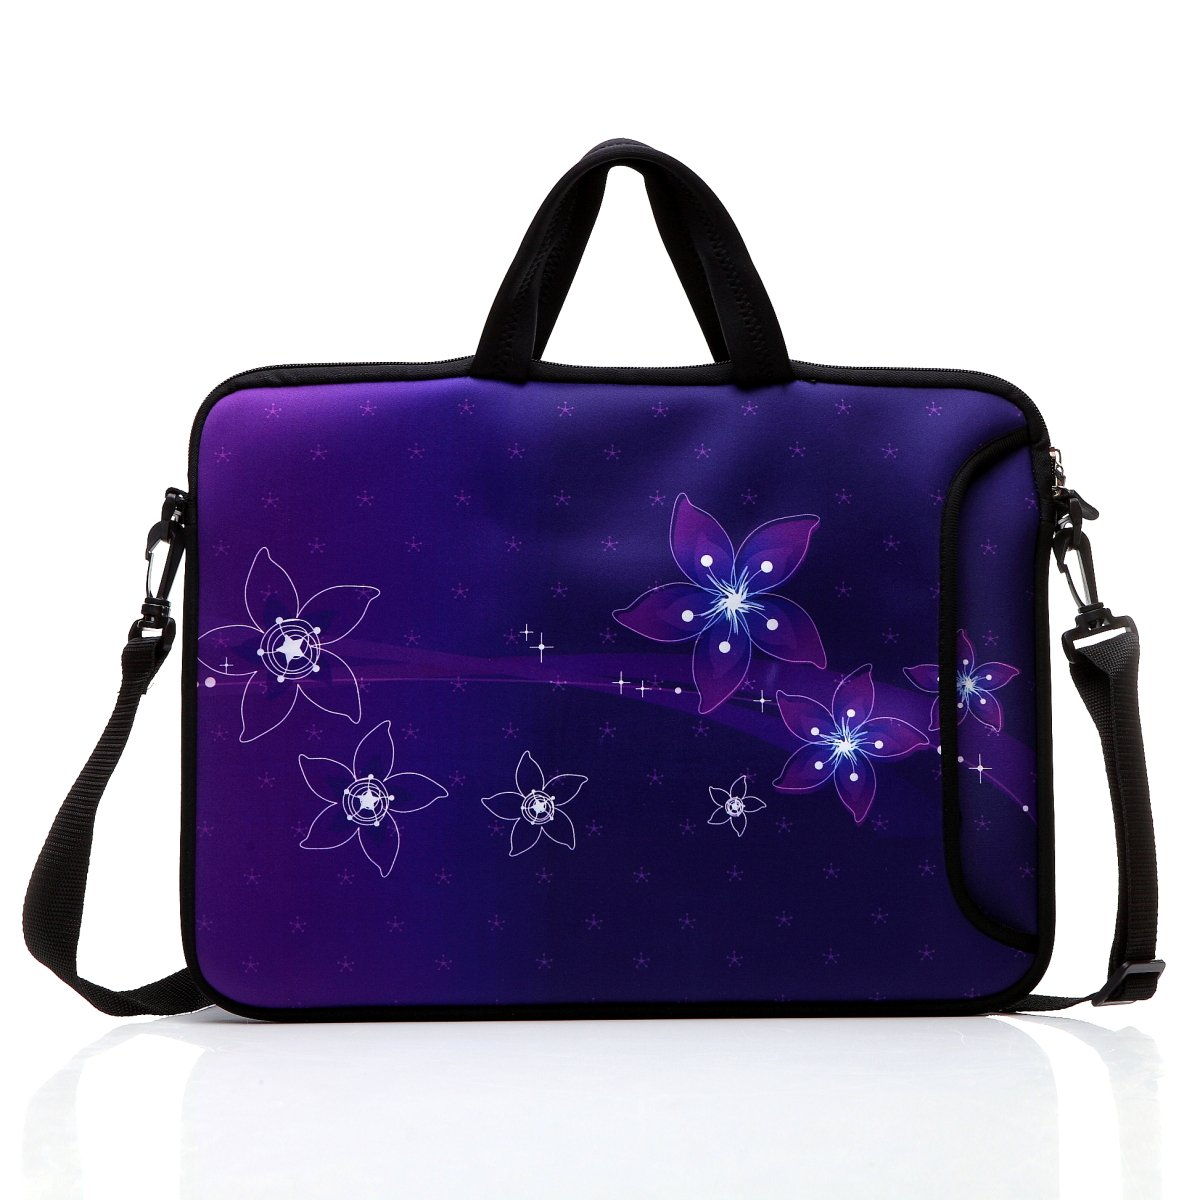 TAIDY 12.5-Inch Laptop Shoulder Bag Sleeve Case with Handle for 11.6 12 12.2 12.5 Netbook/MacBook Air Pro (Purple) 4328552706